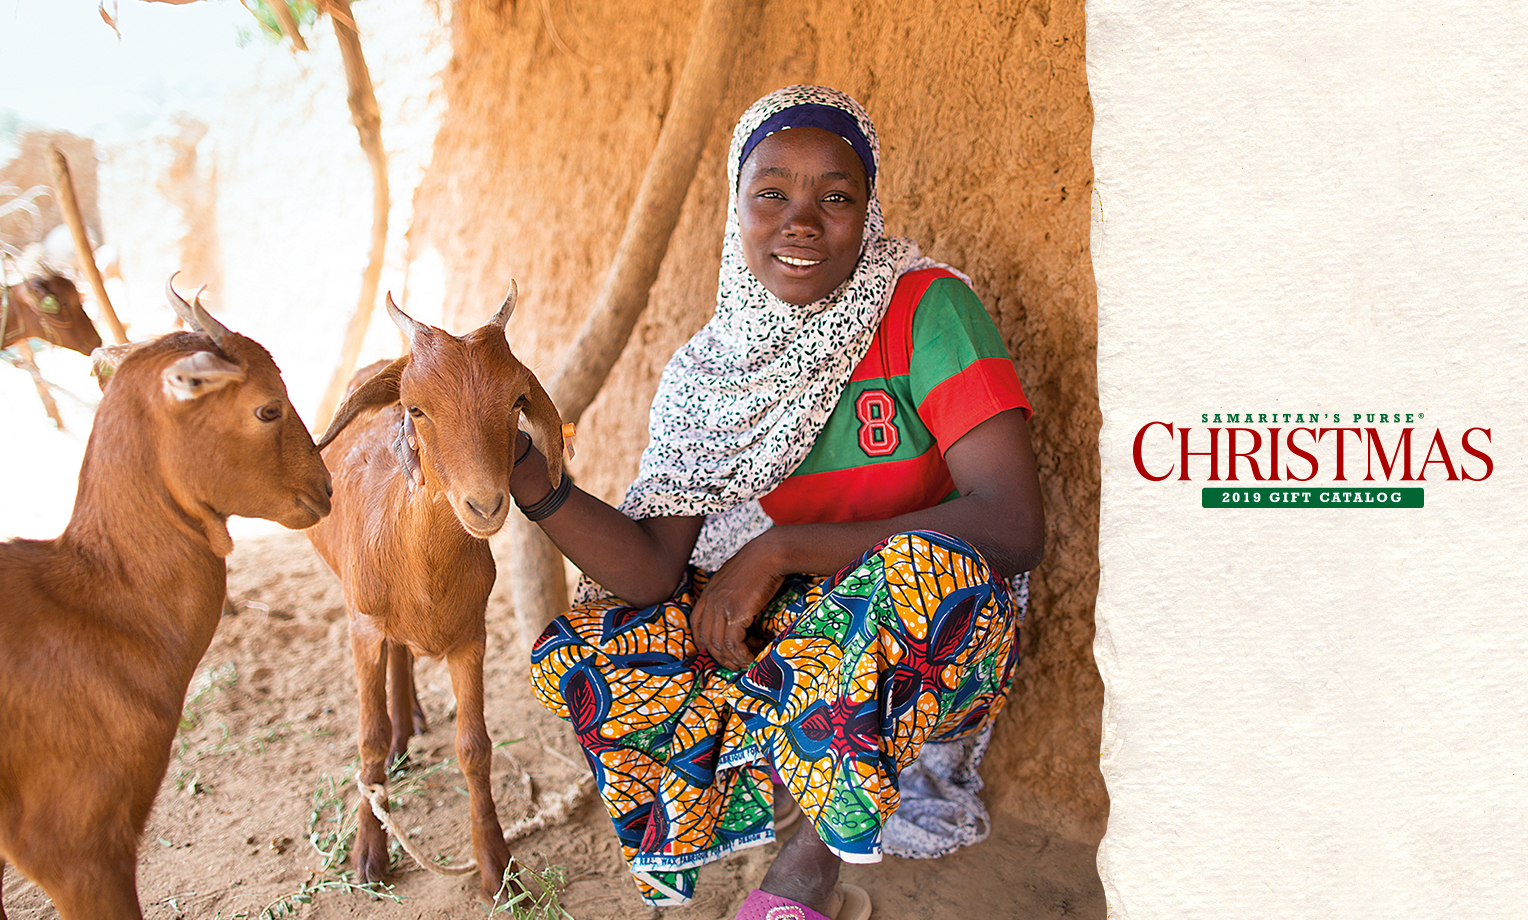 Just one goat or dairy animal can provide a better life for impoverished people in countries like Haiti, Kenya, Uganda, and Vietnam.